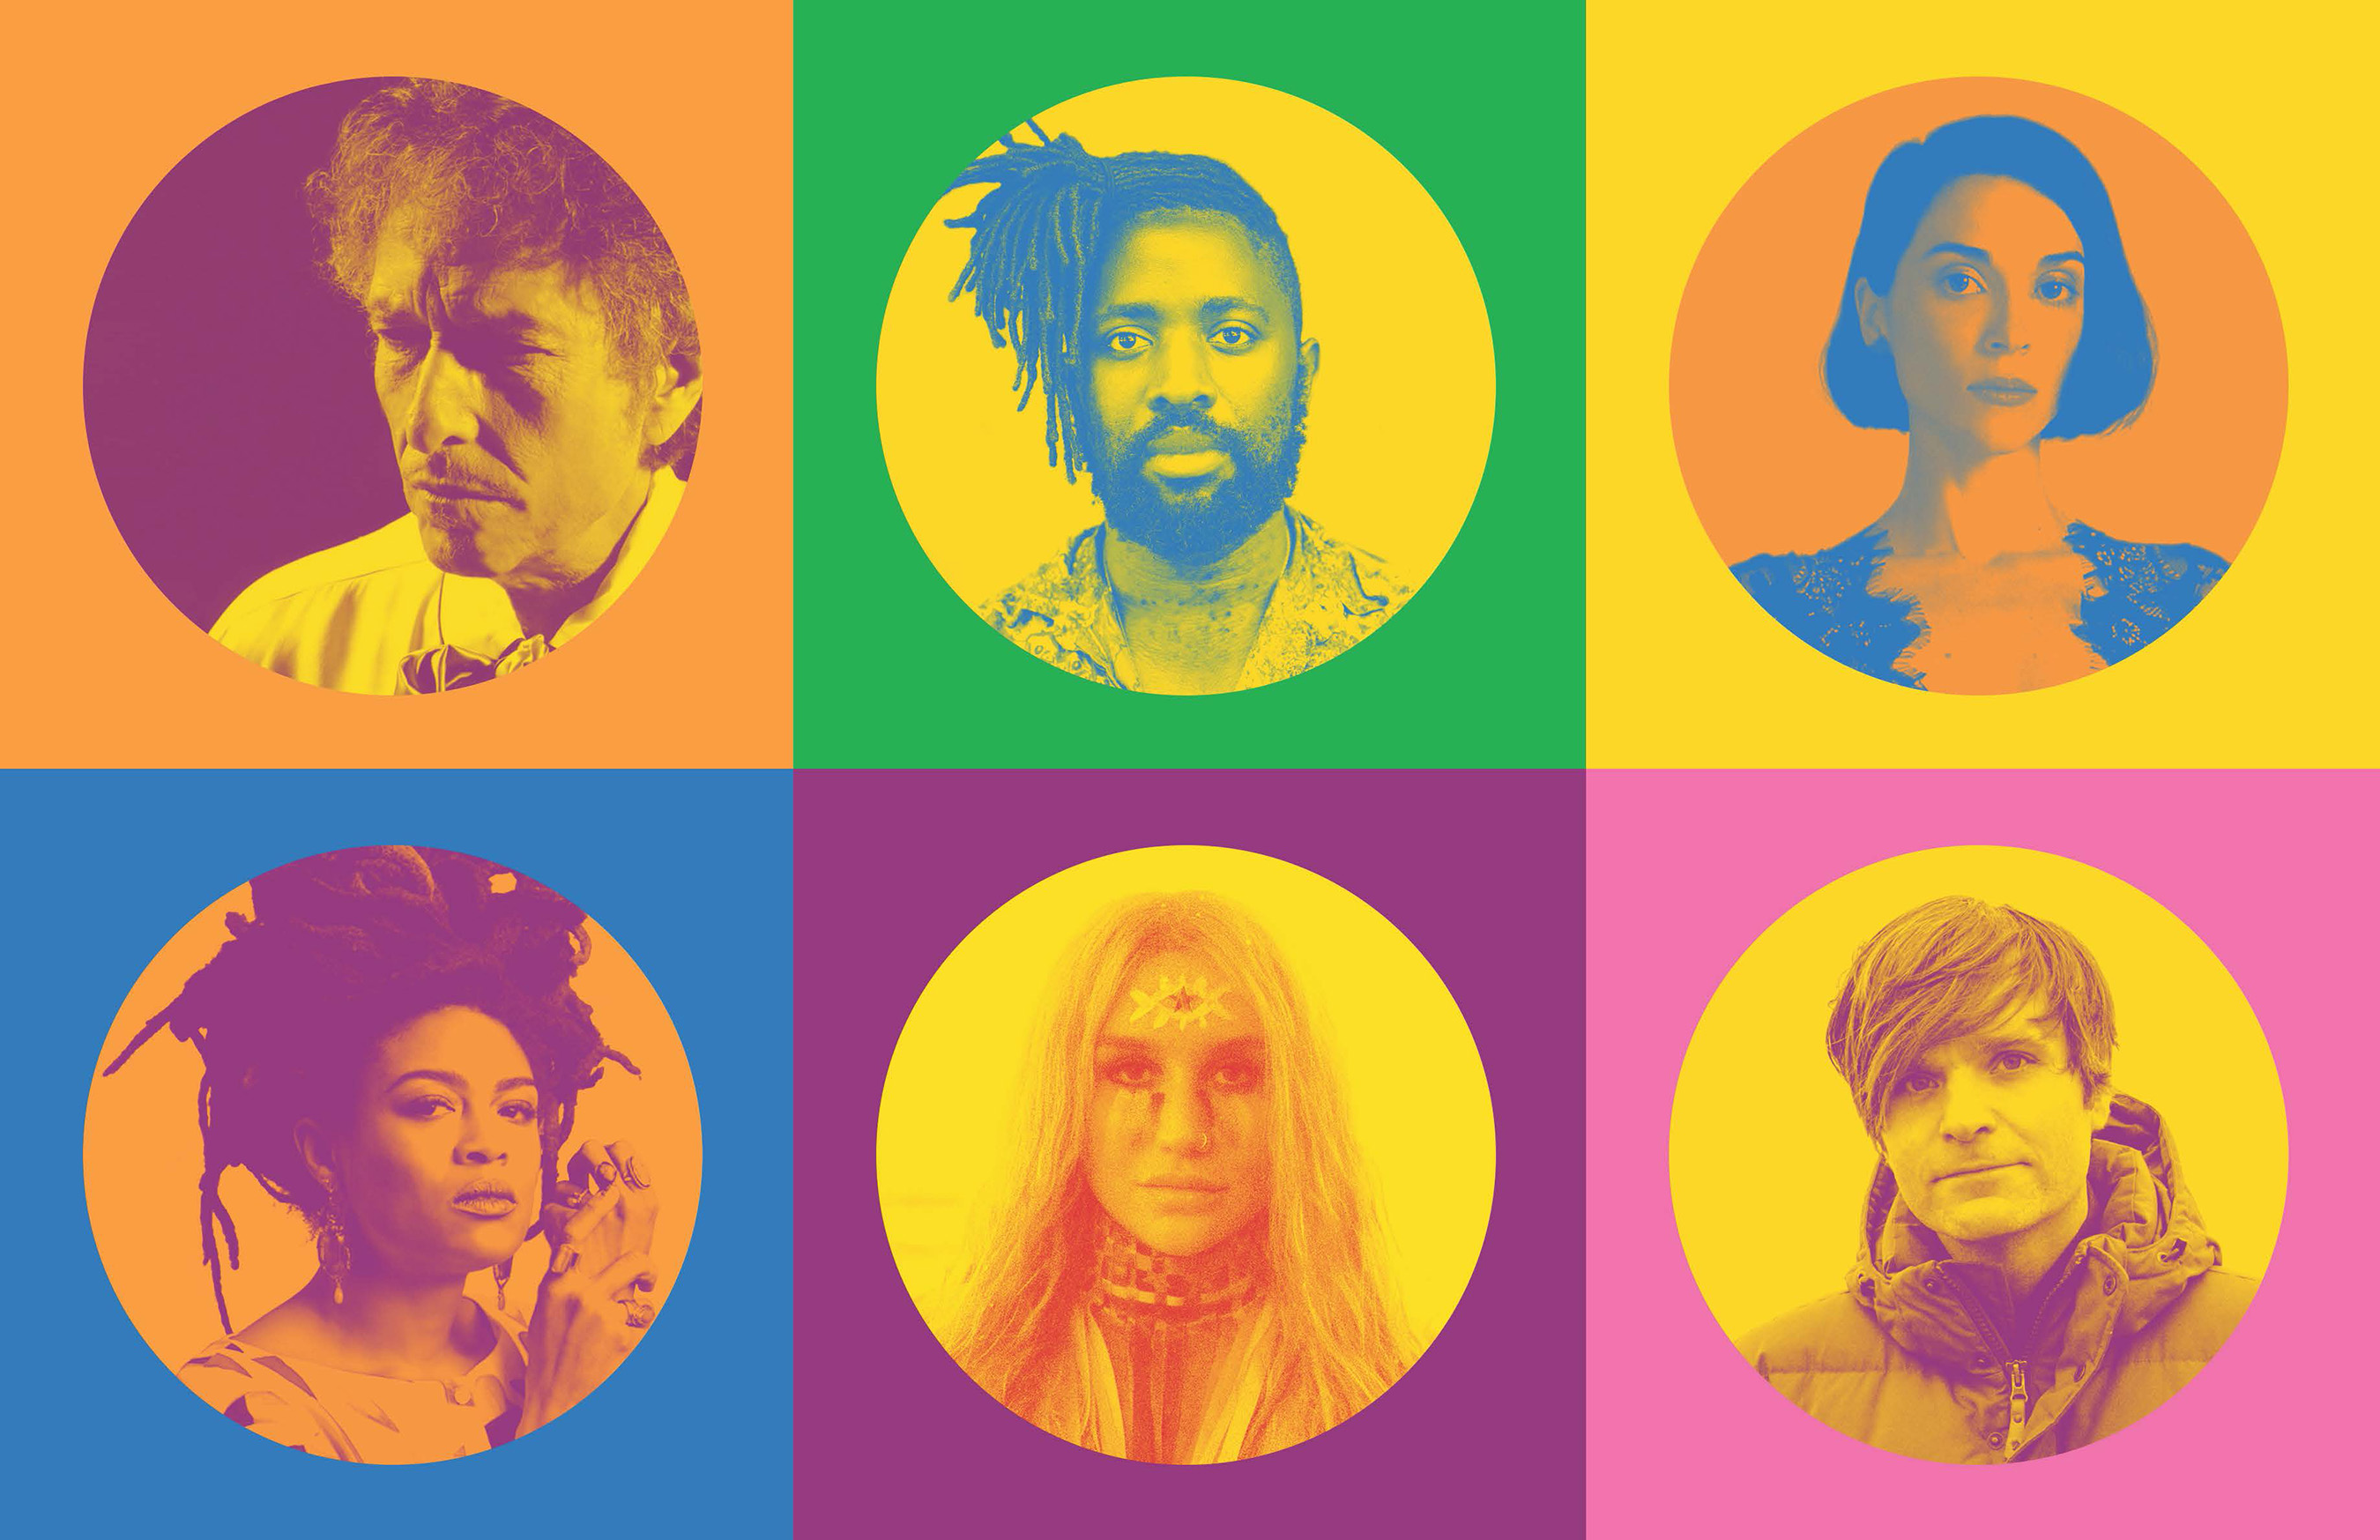 MGM Resorts releases UNIVERSAL LOVE, a collection of reimagined love songs for the LGBTQ community featuring Bob Dylan, Kesha, Benjamin Gibbard, St. Vincent, Valerie June and Kele Okereke.